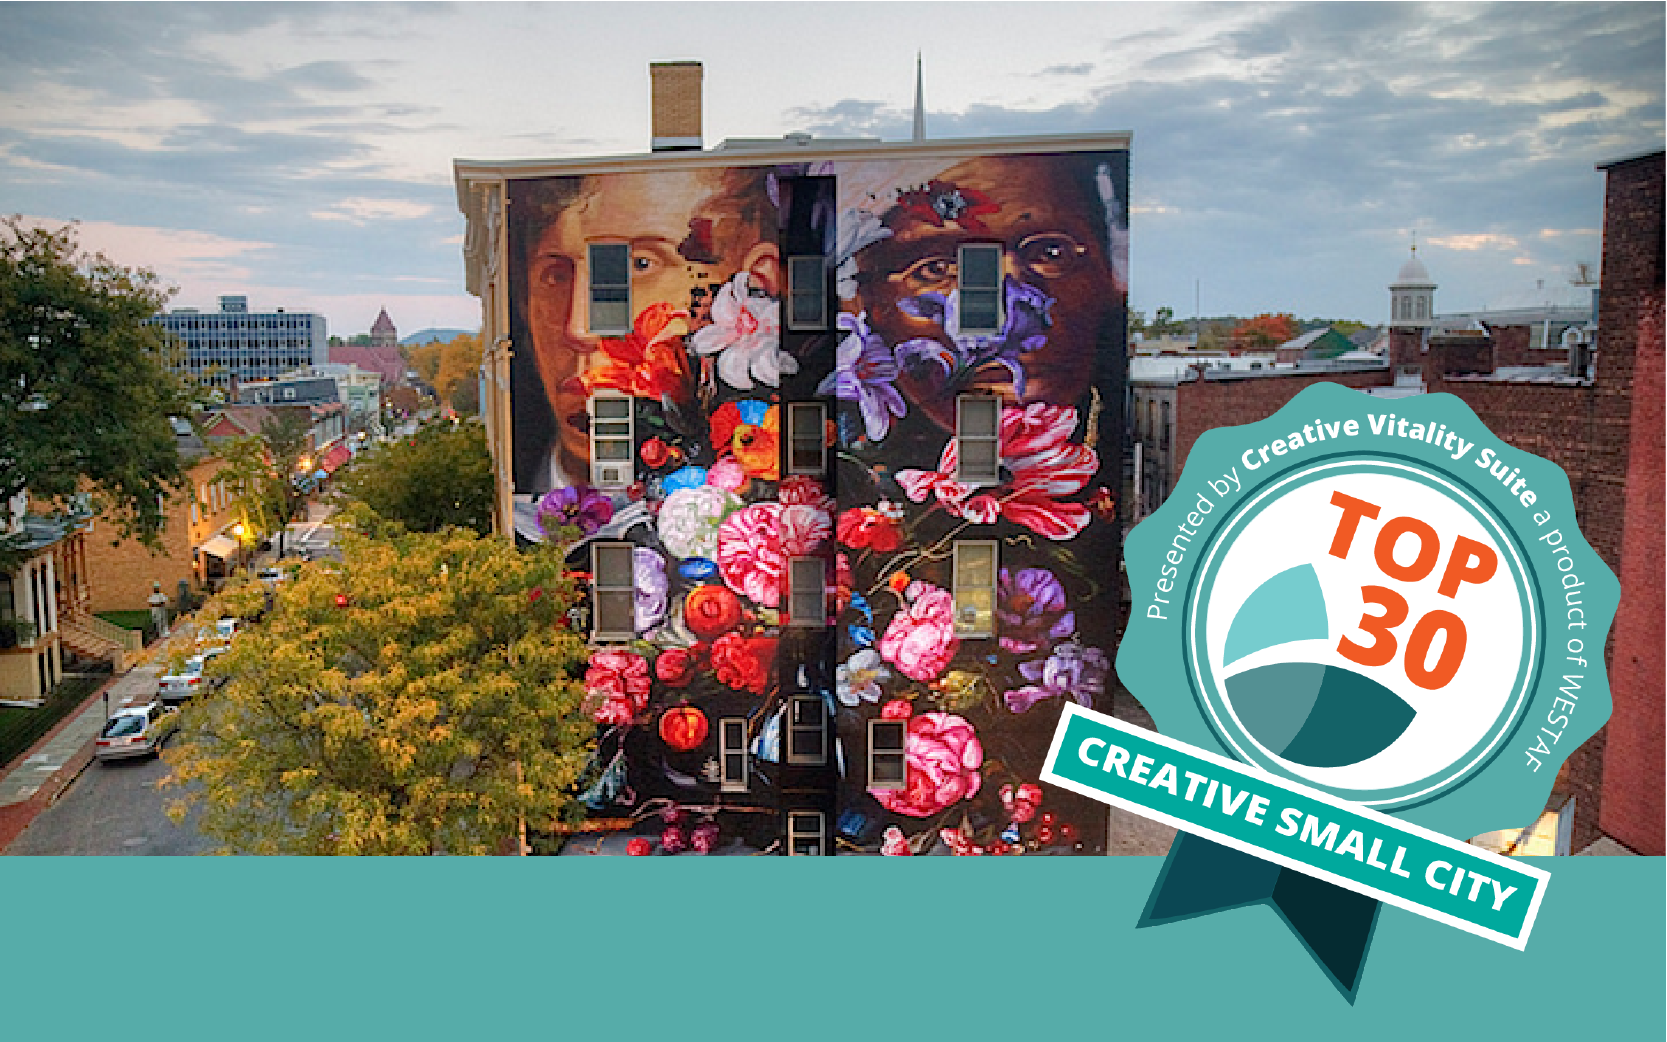 CVSuite Top 30 Creative Small Cities Featured Image